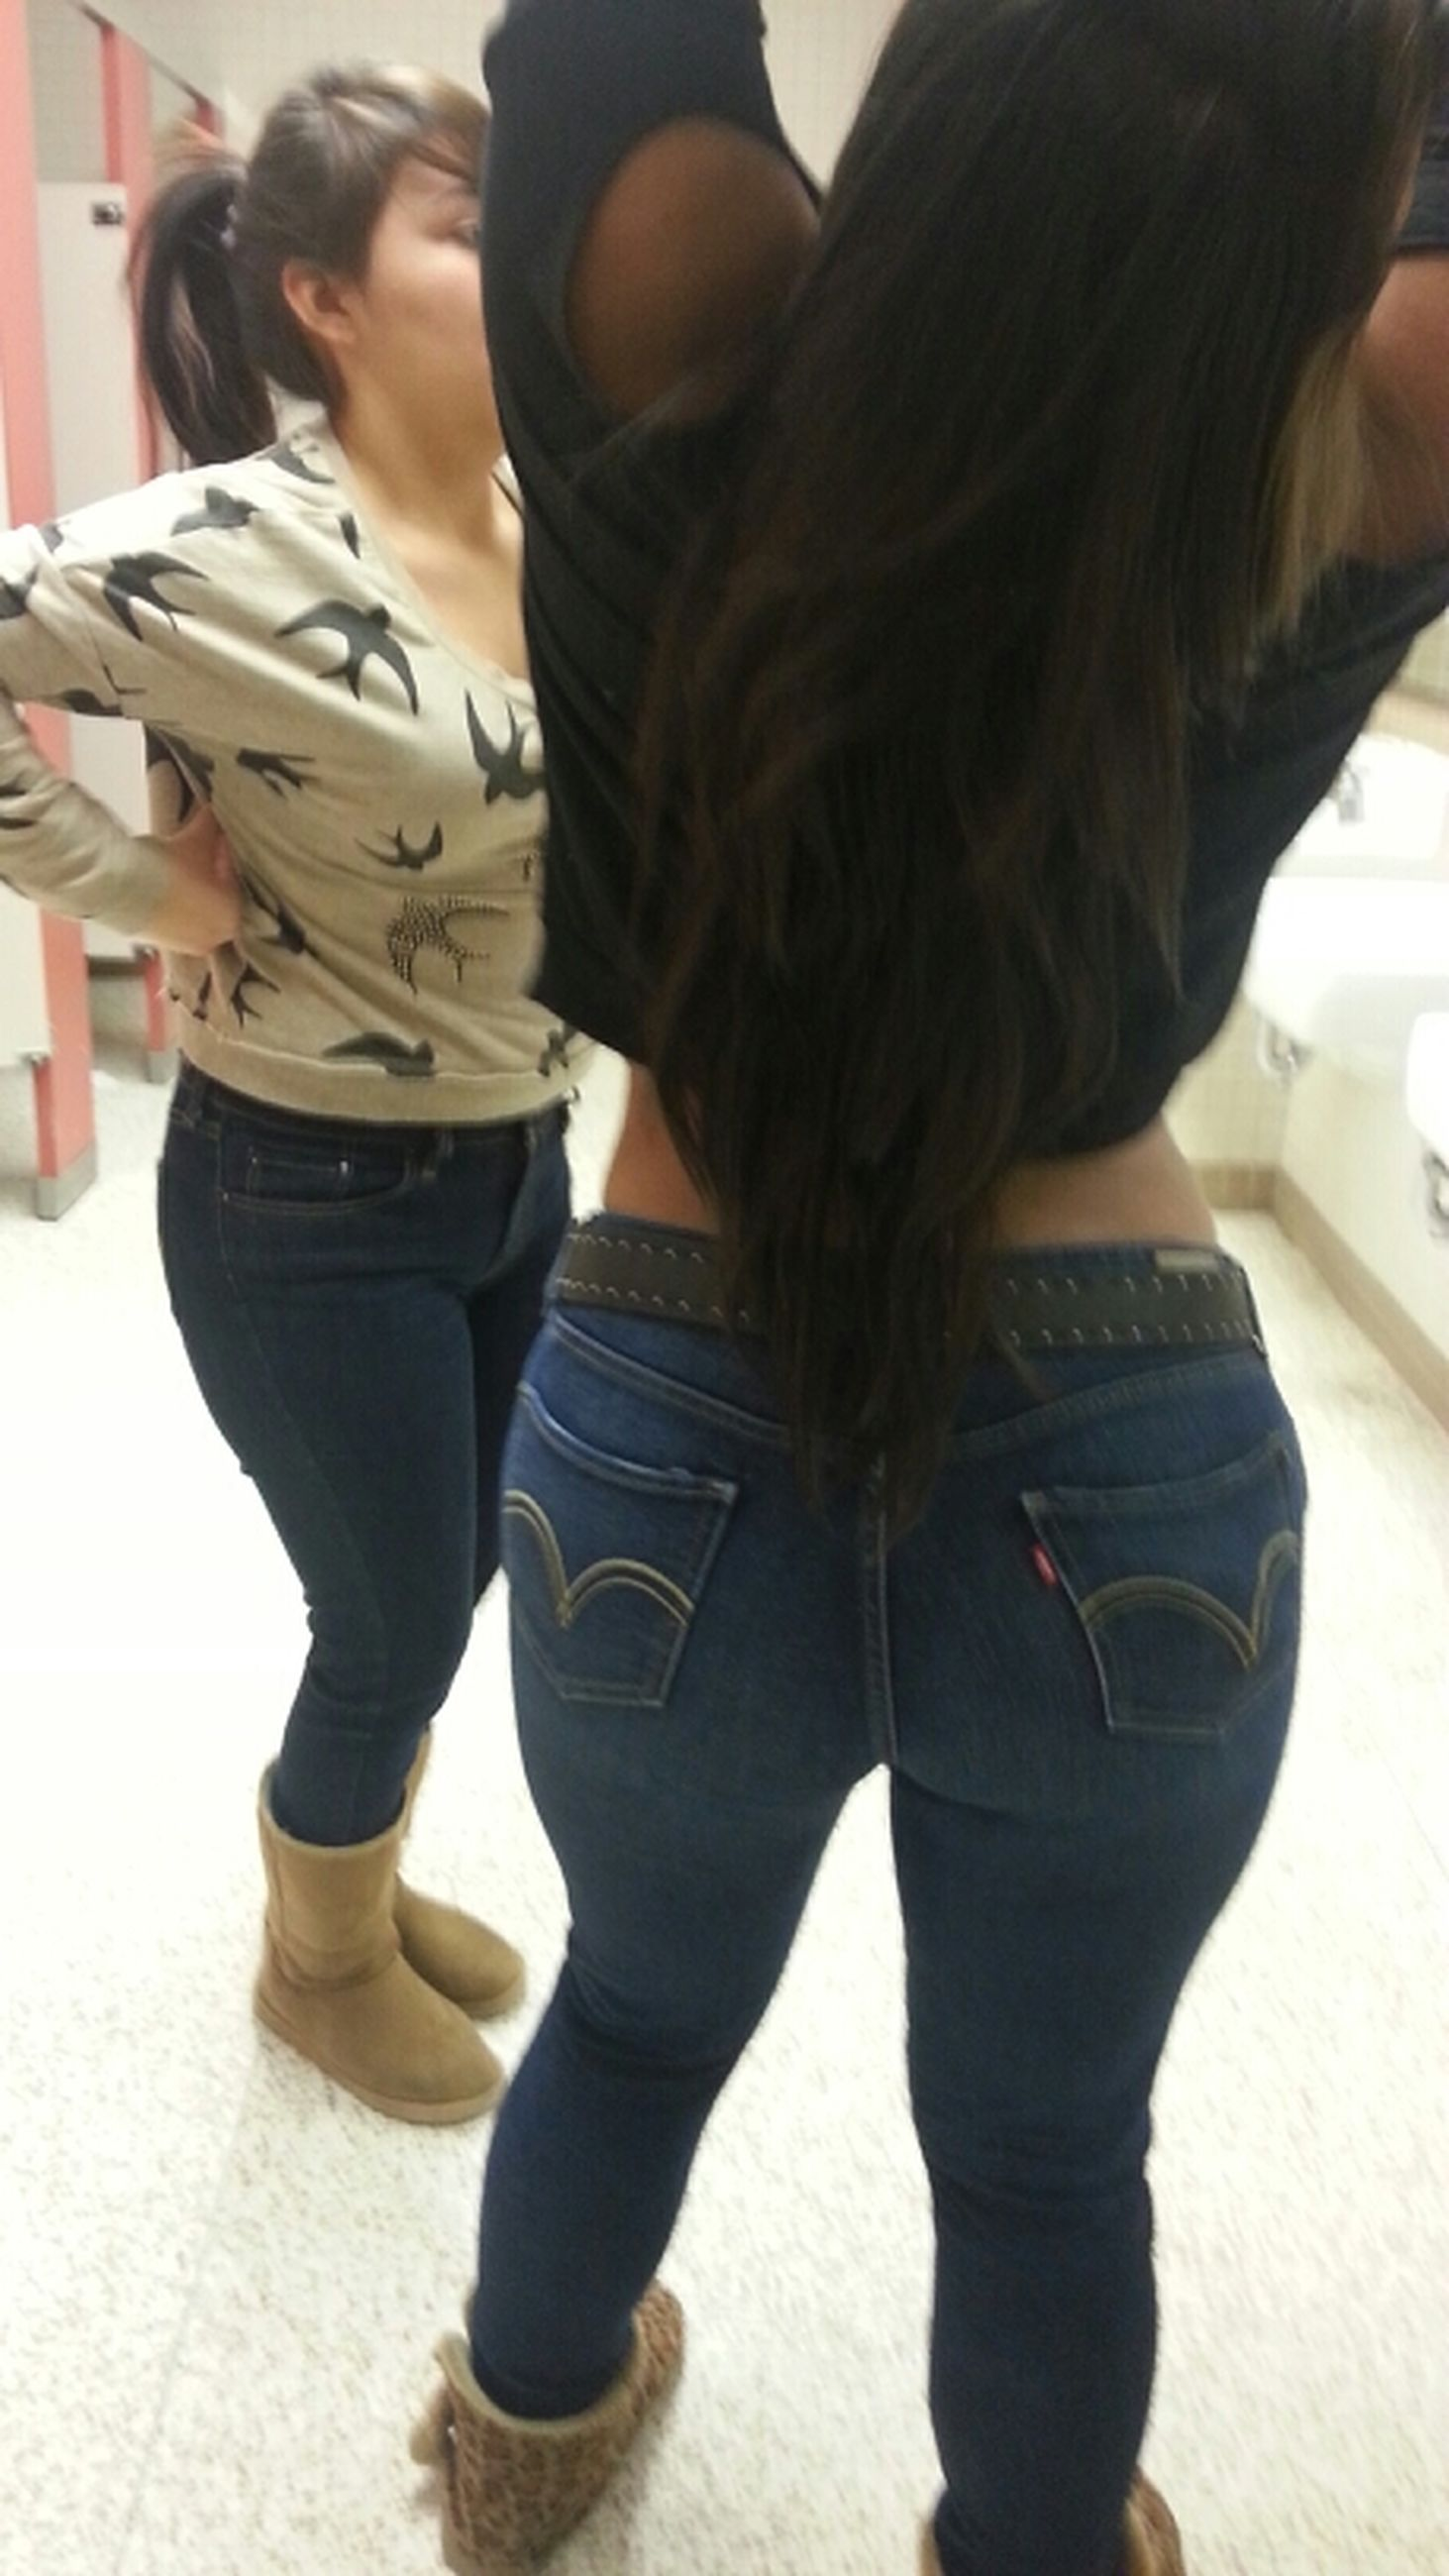 lifestyles, casual clothing, standing, person, indoors, leisure activity, rear view, low section, men, full length, walking, long hair, togetherness, side view, young adult, midsection